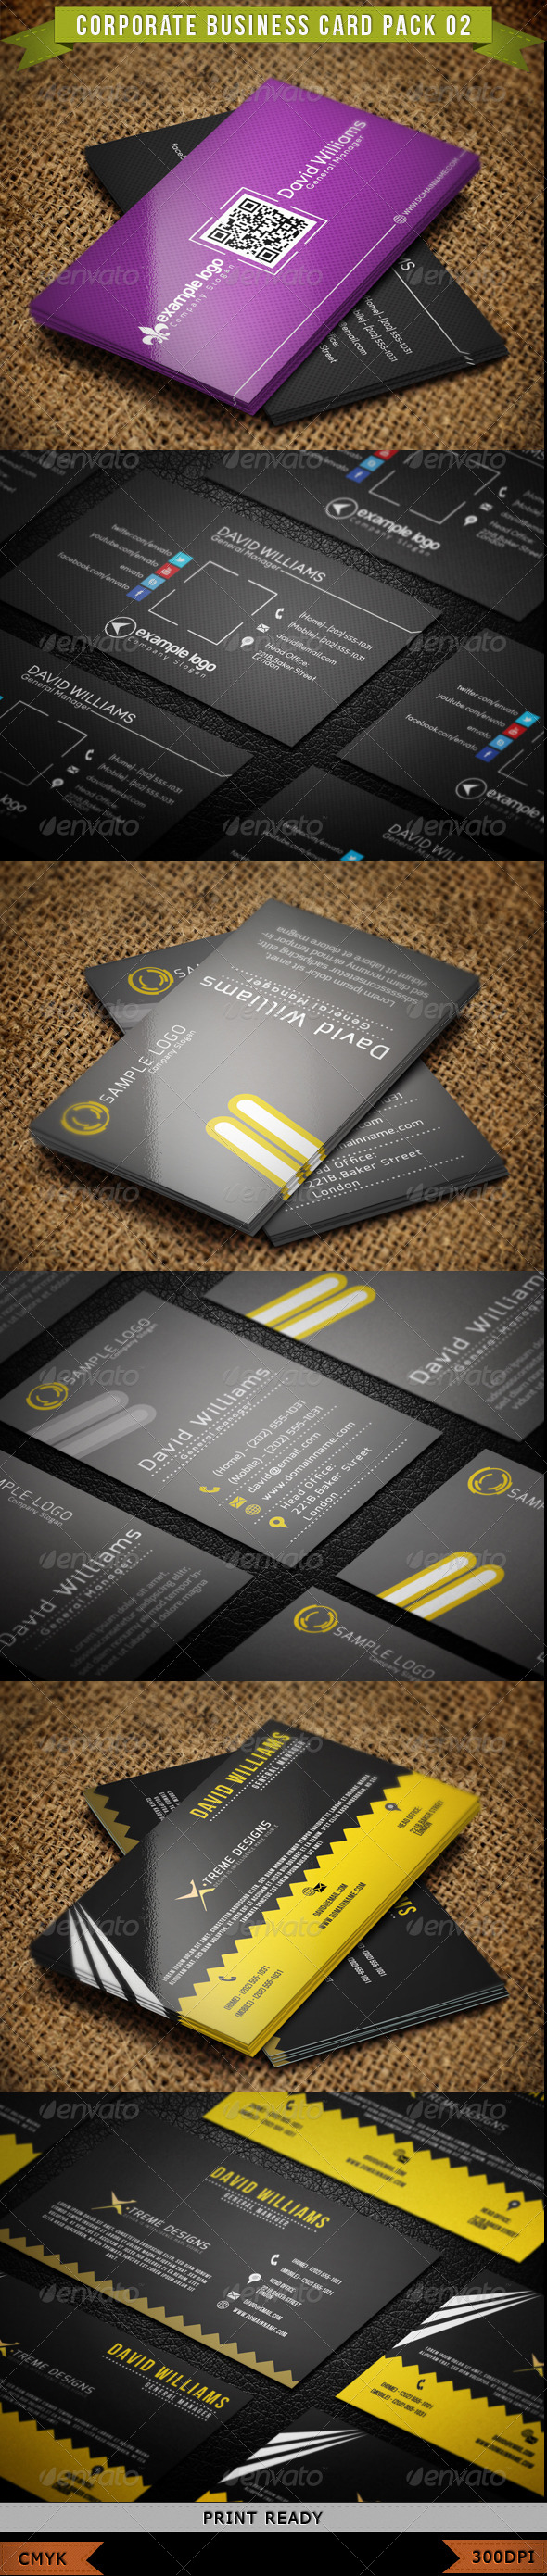 Corporate Business Card Pack 02 - Corporate Business Cards